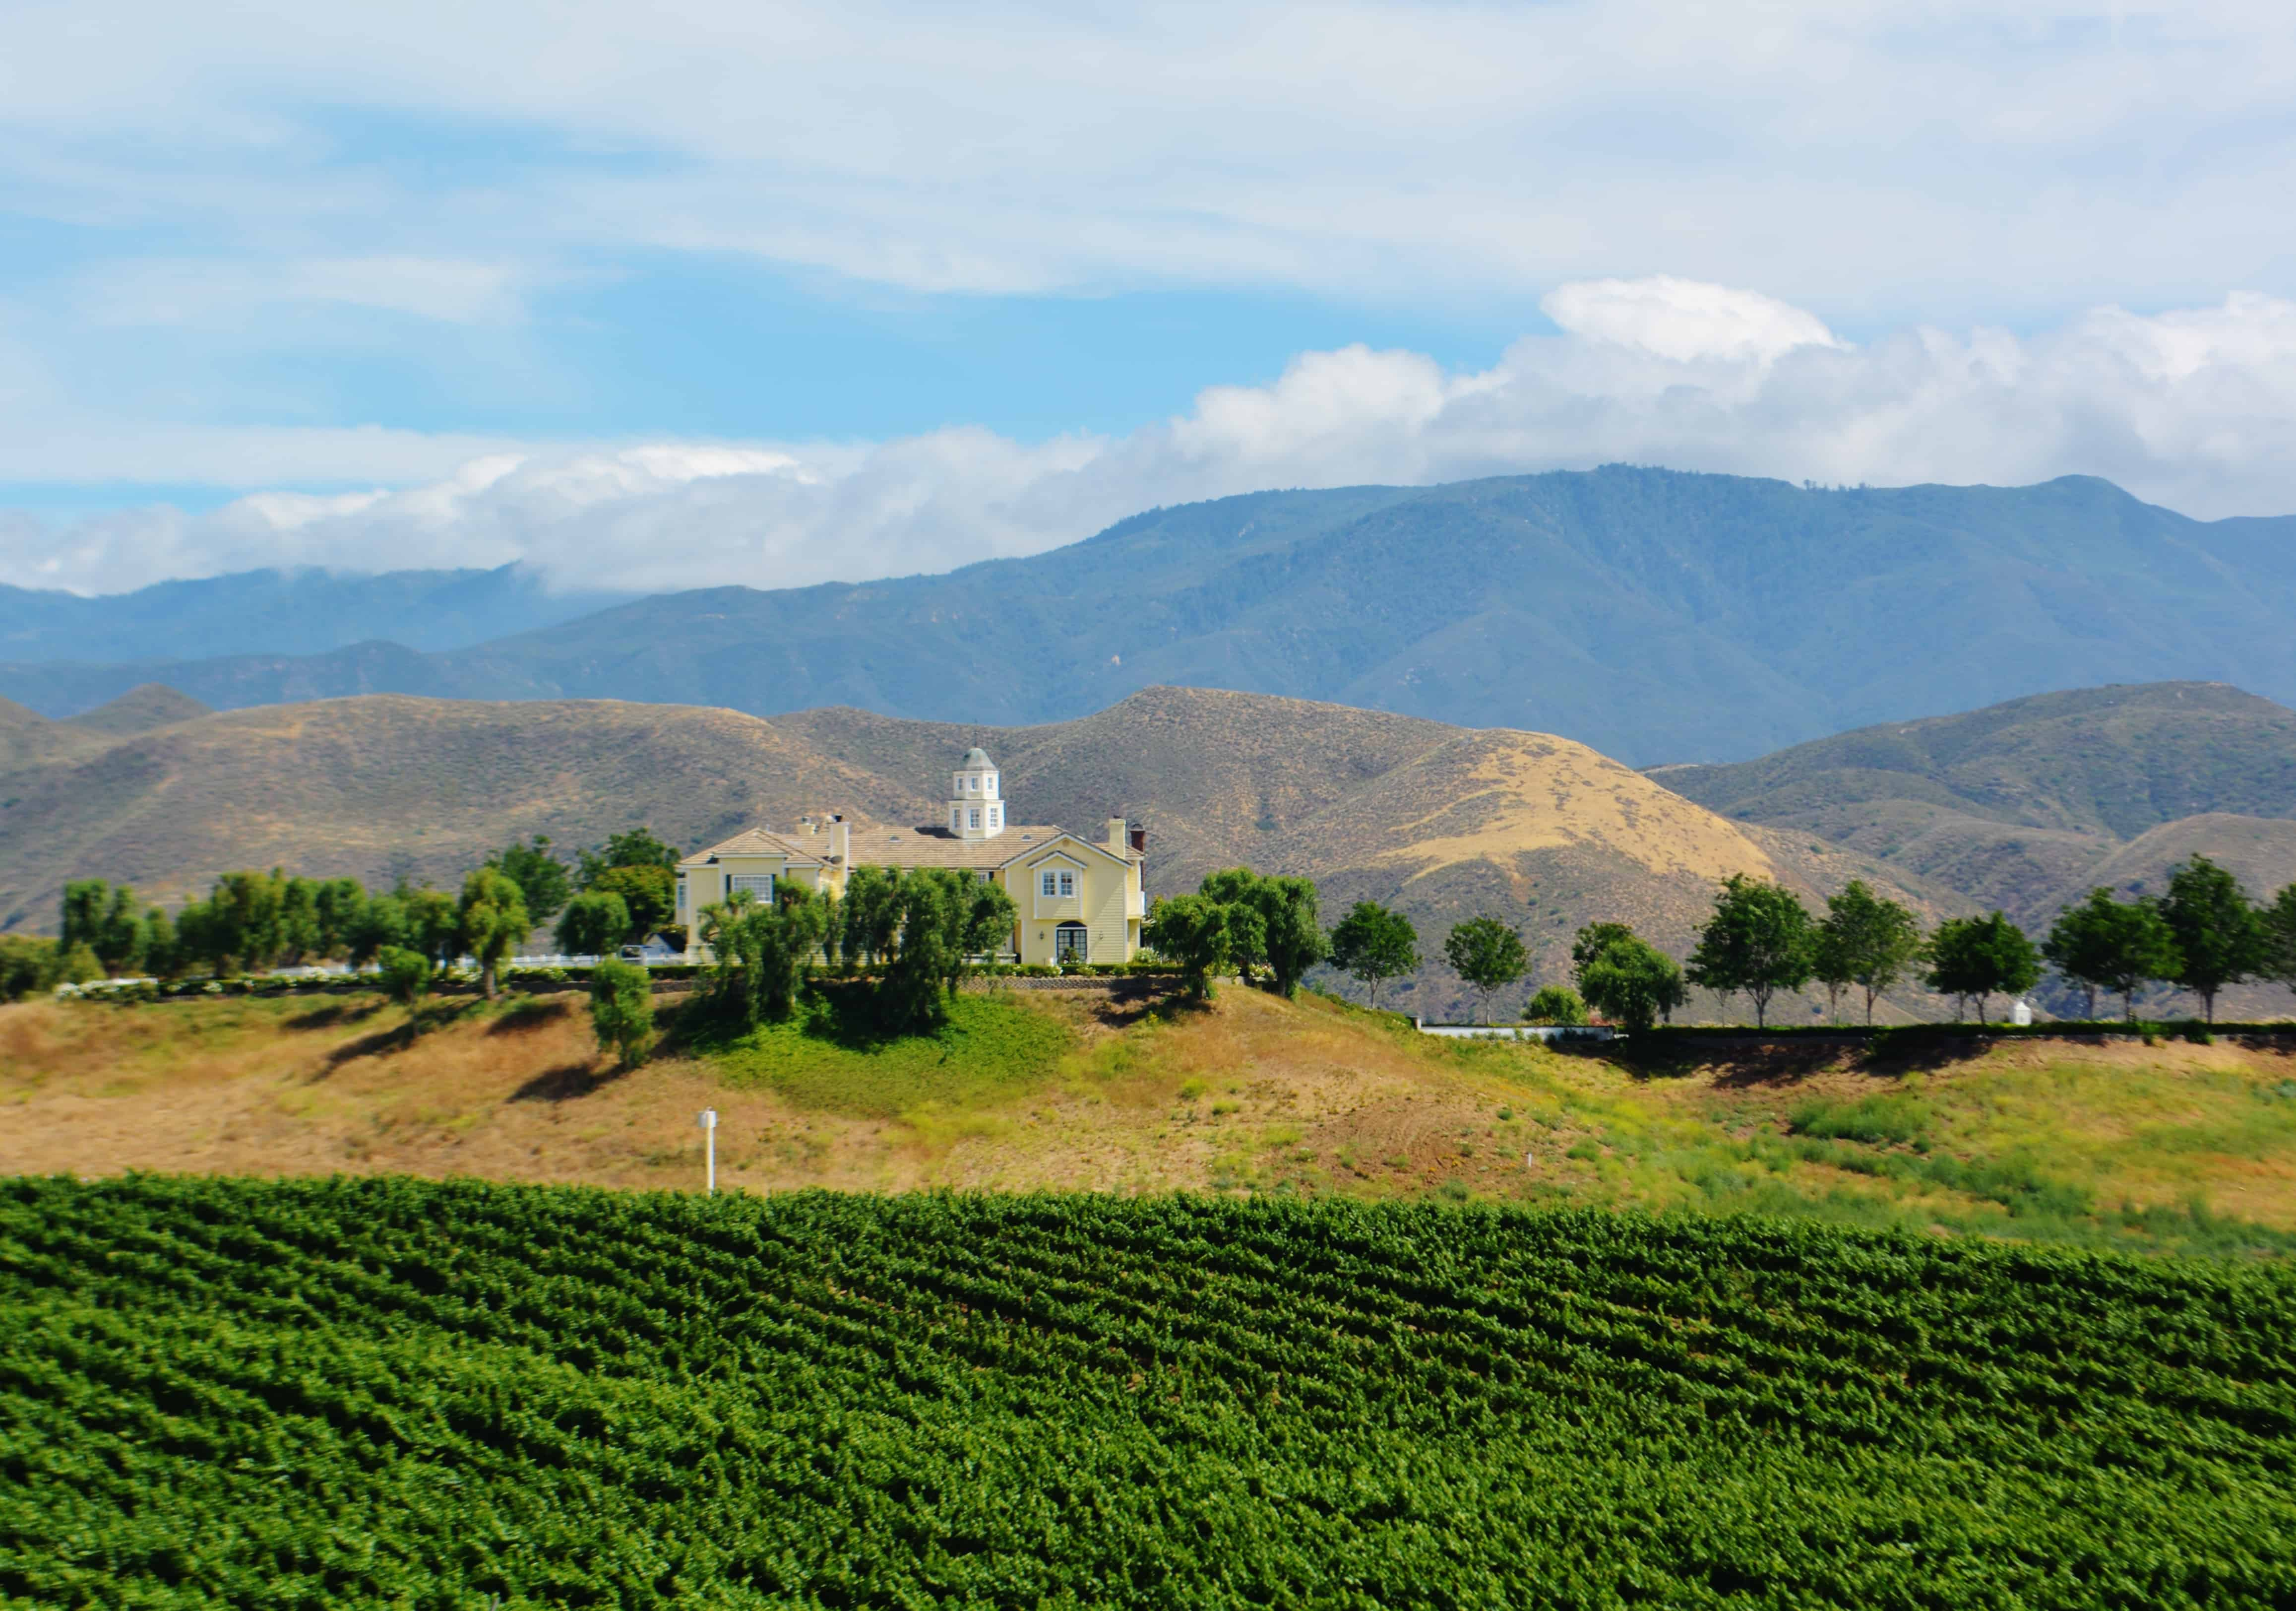 Winery and Mountain Views in Temecula California